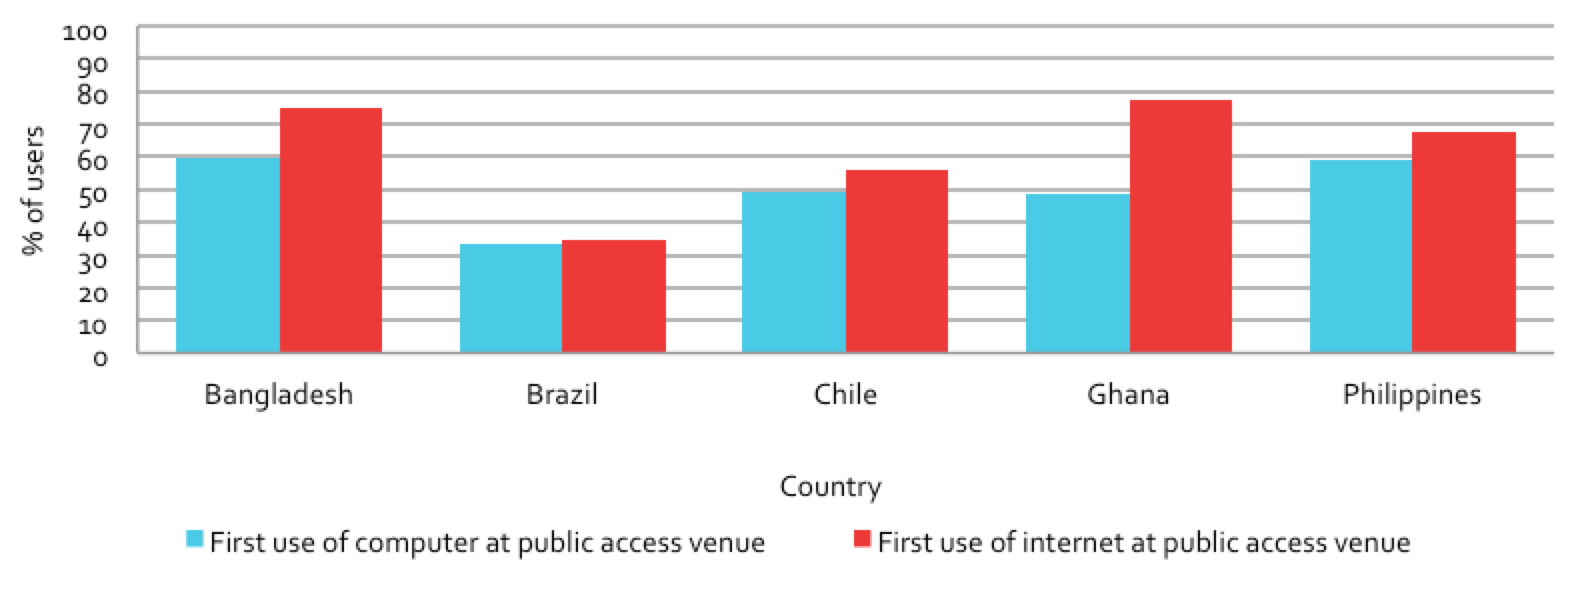 Figure 4.1: First use of computer and internet at a public access venue